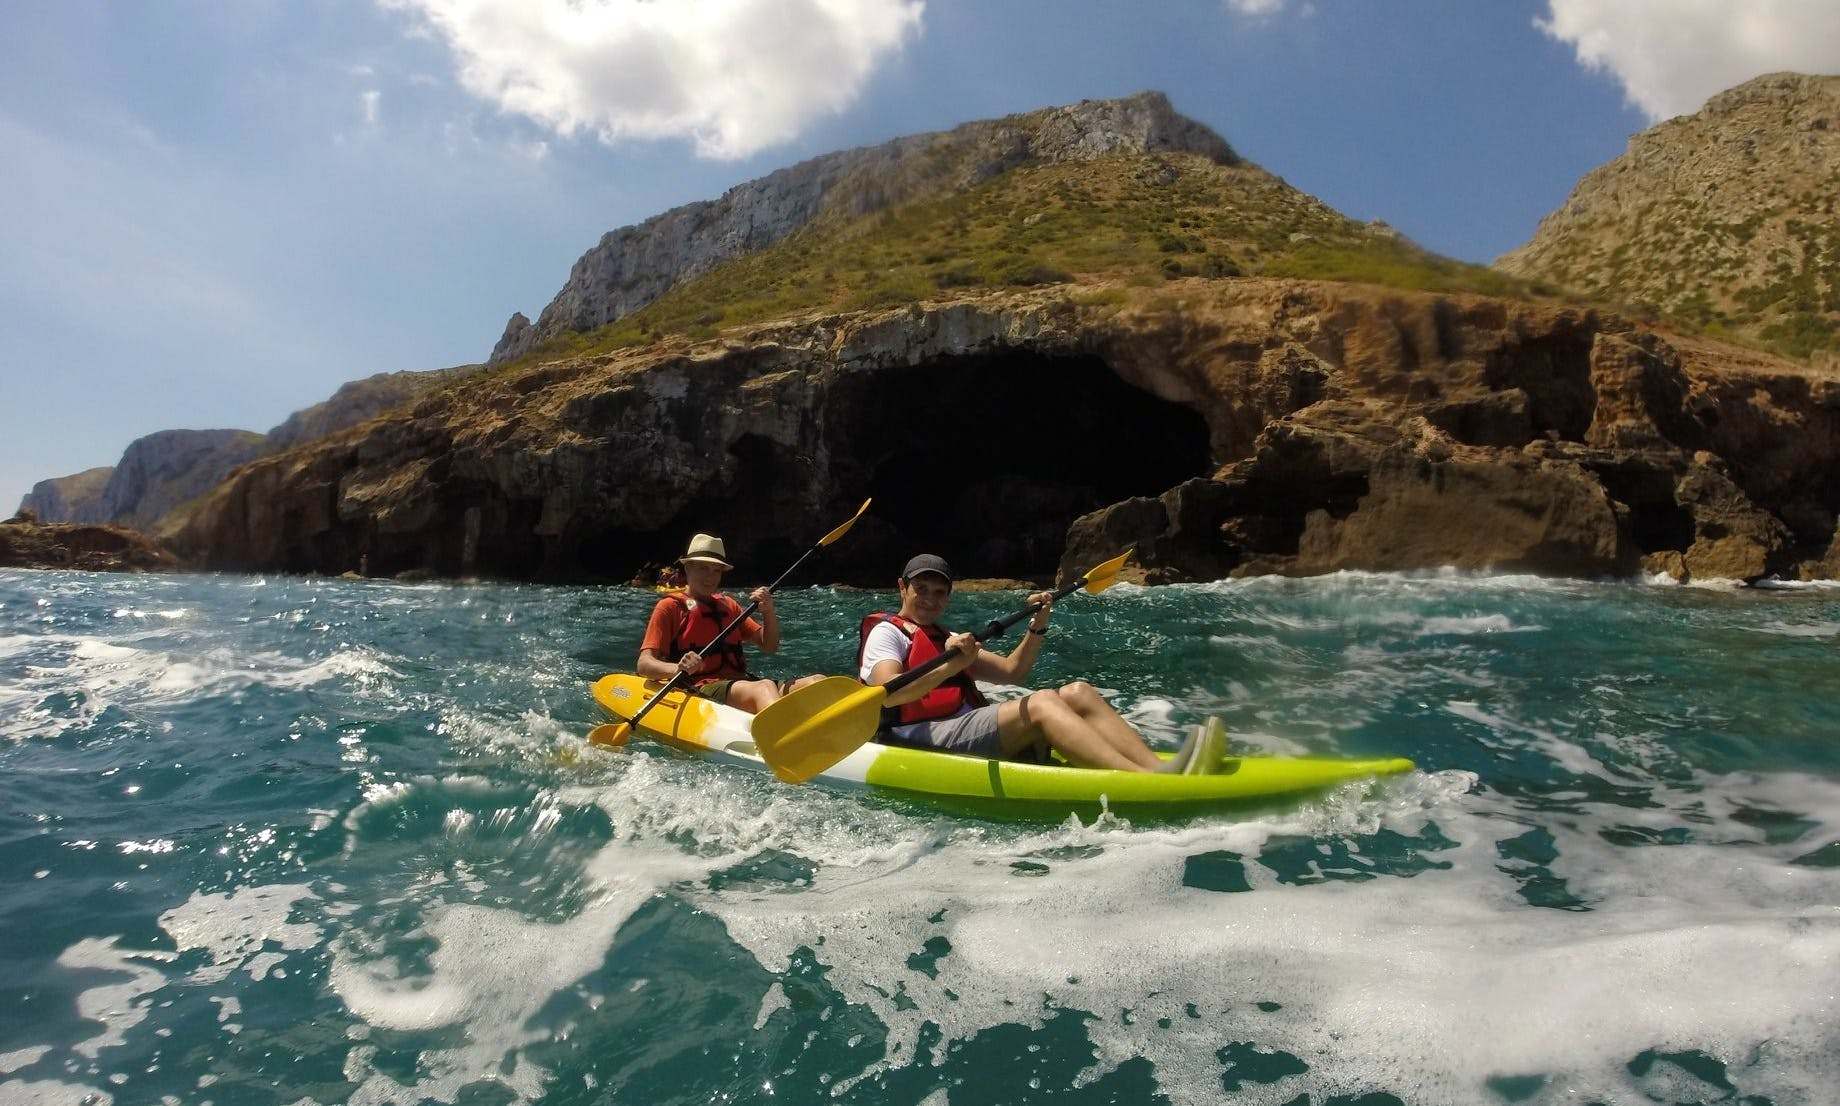 Kayaking in Denia, Spain